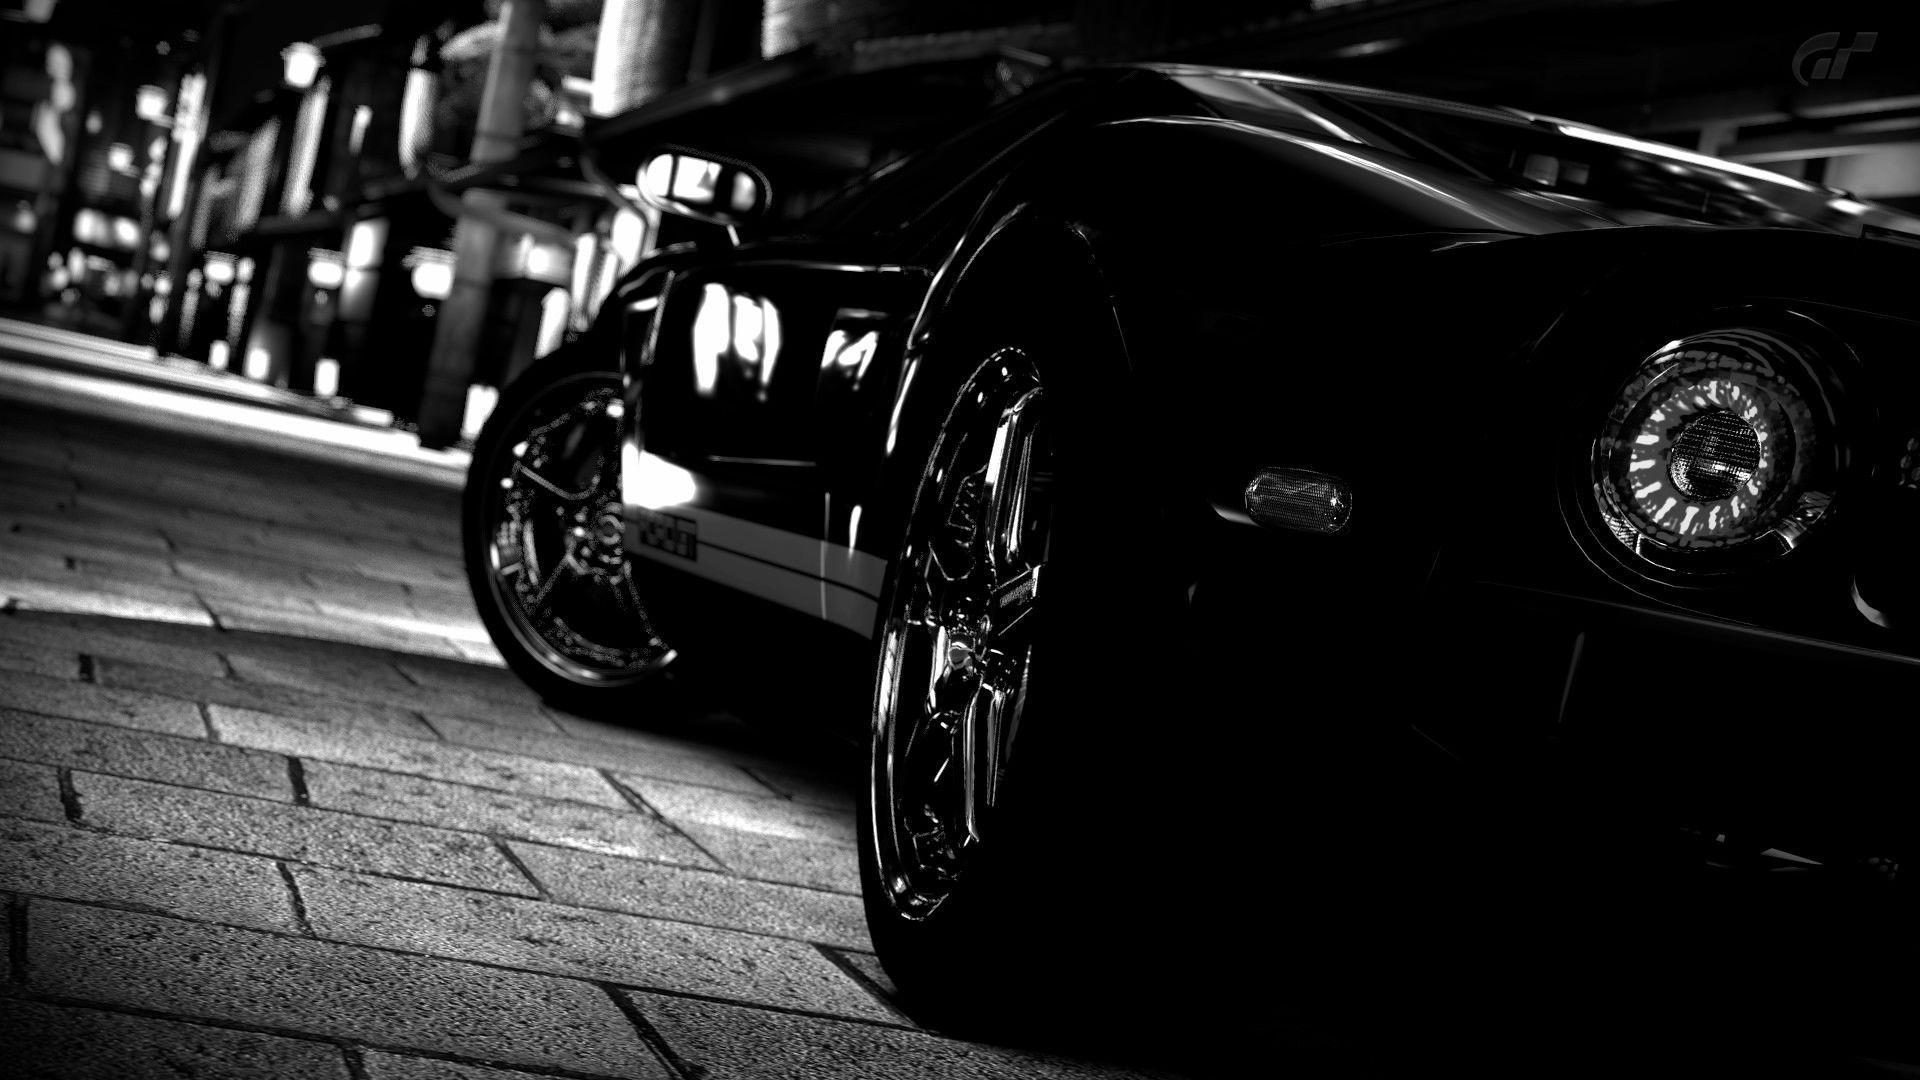 Wallpapers For > Black Ferrari Hd Wallpapers 1080p